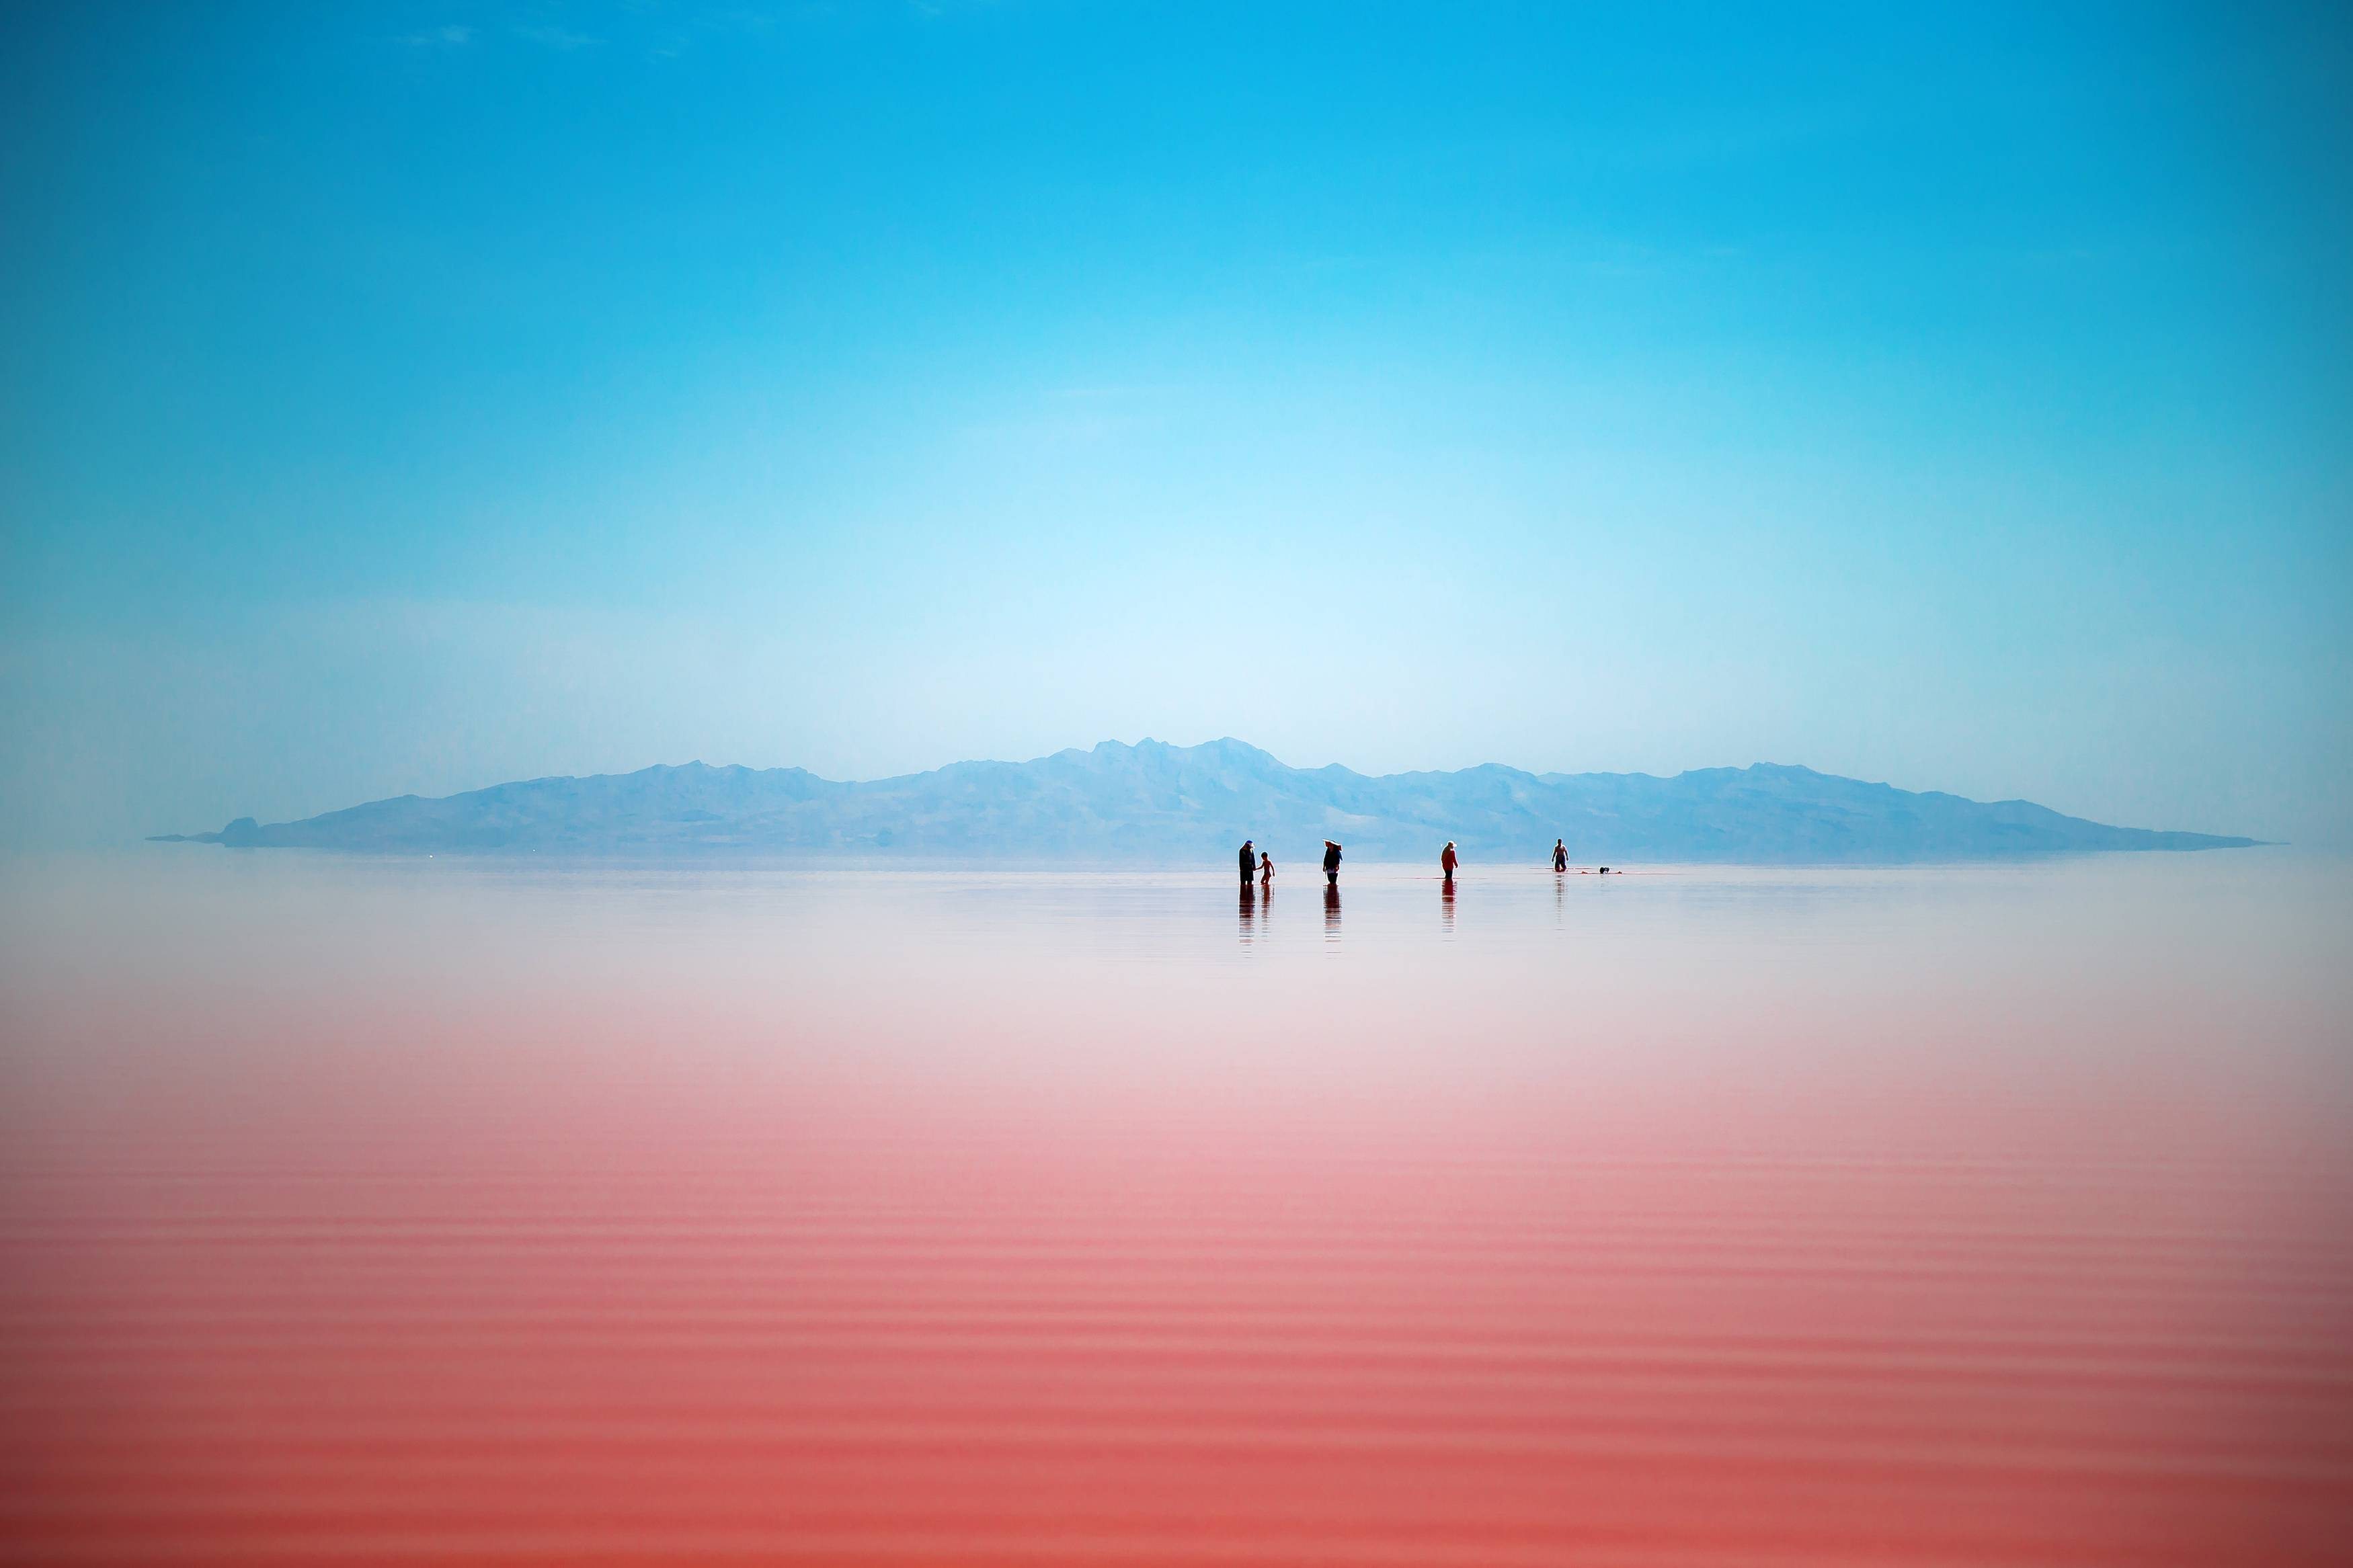 Iranians enjoying the Urmia salt lake after a rain.